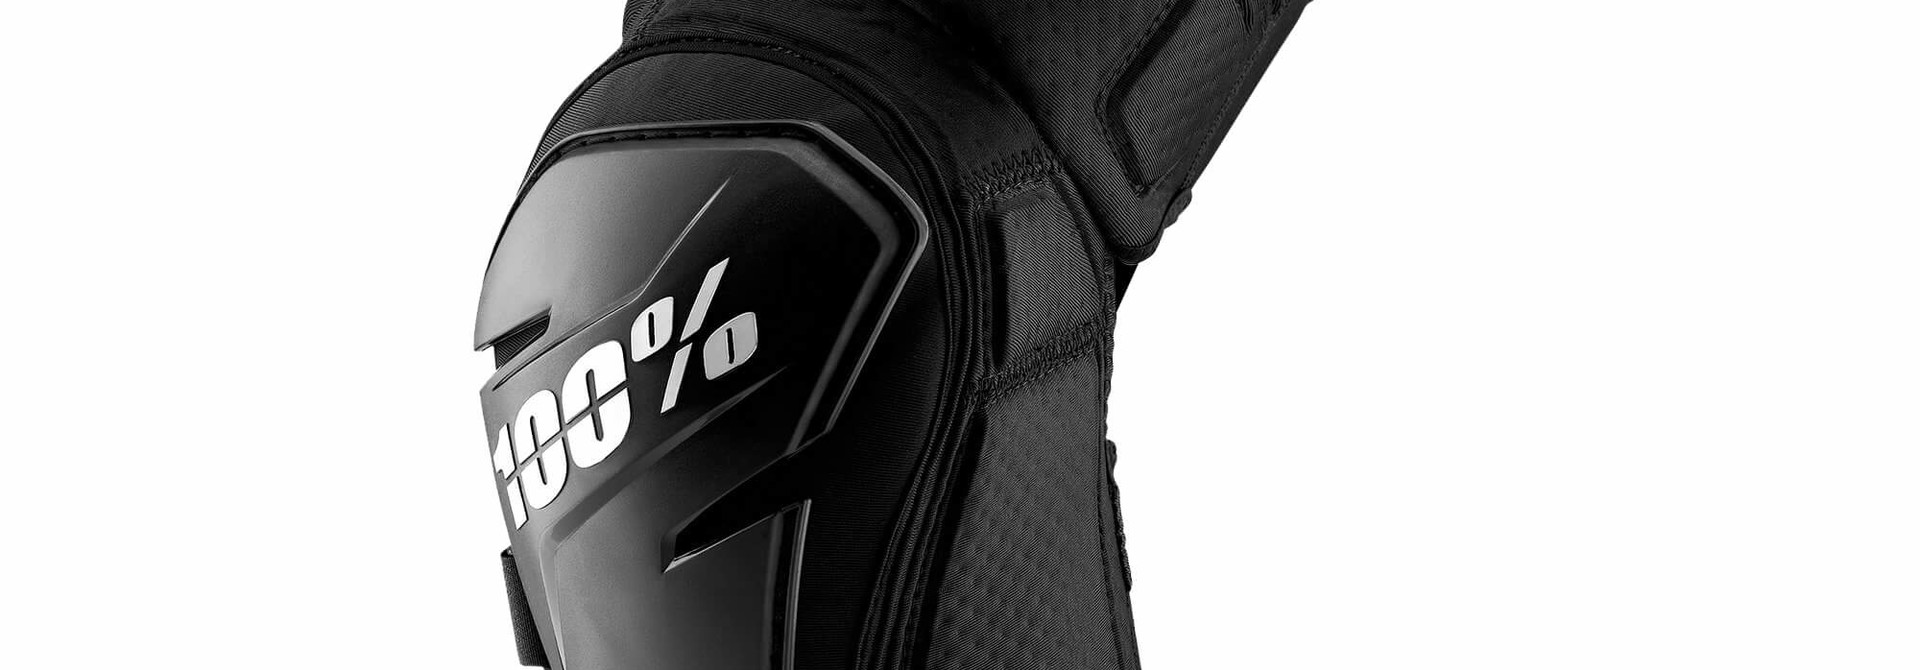 Fortis Knee Guard Black